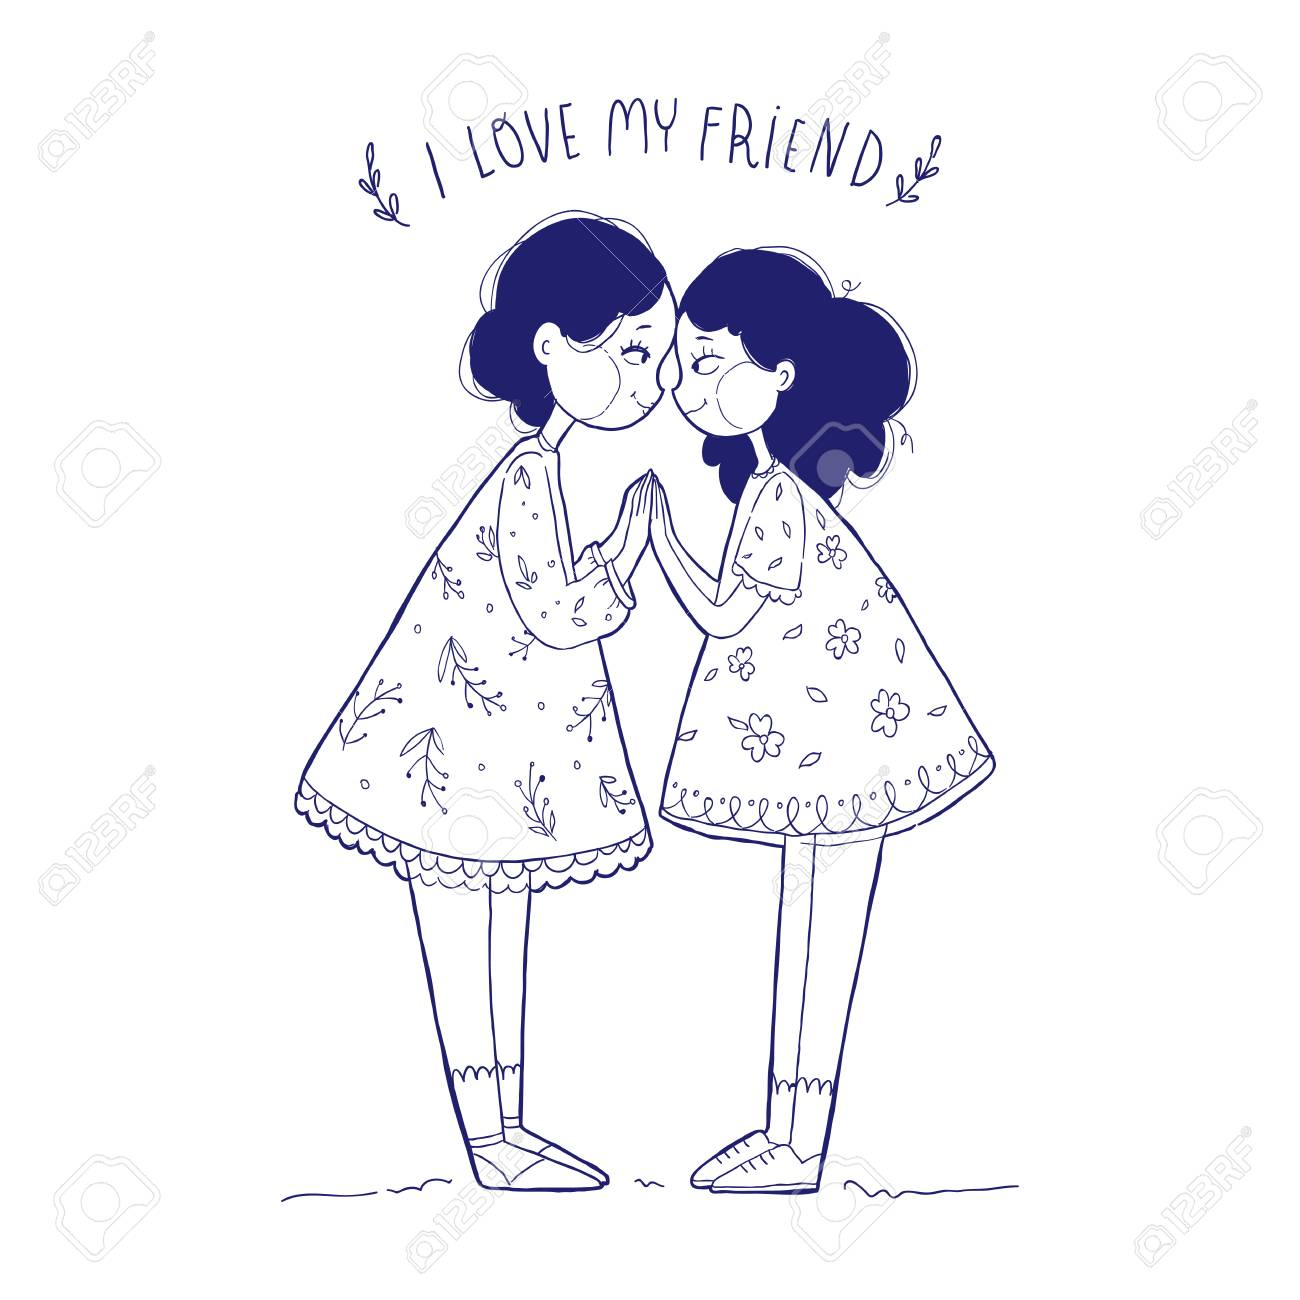 Vector Illustration Greeting Card Happy Friendship Day Two